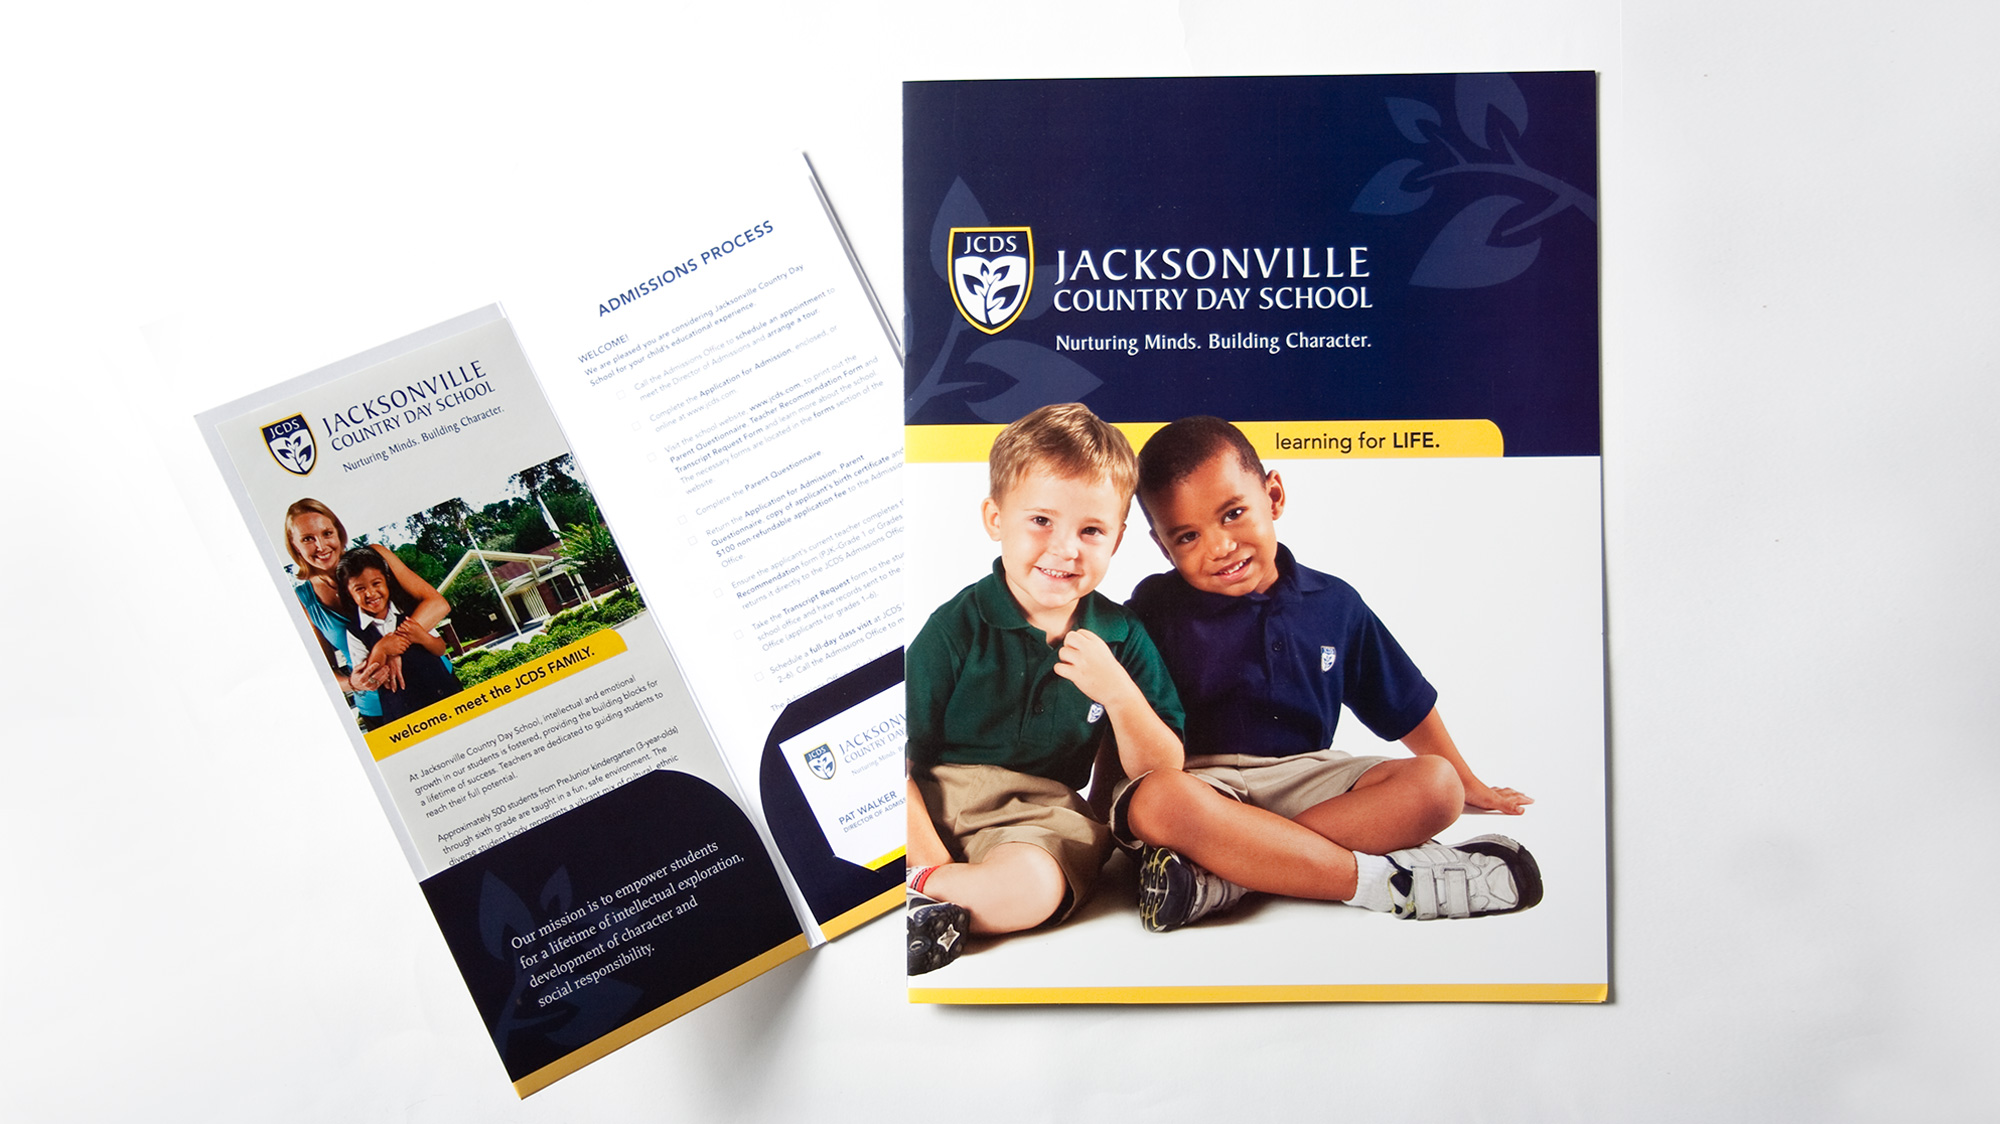 Jacksonville Country Day School view book